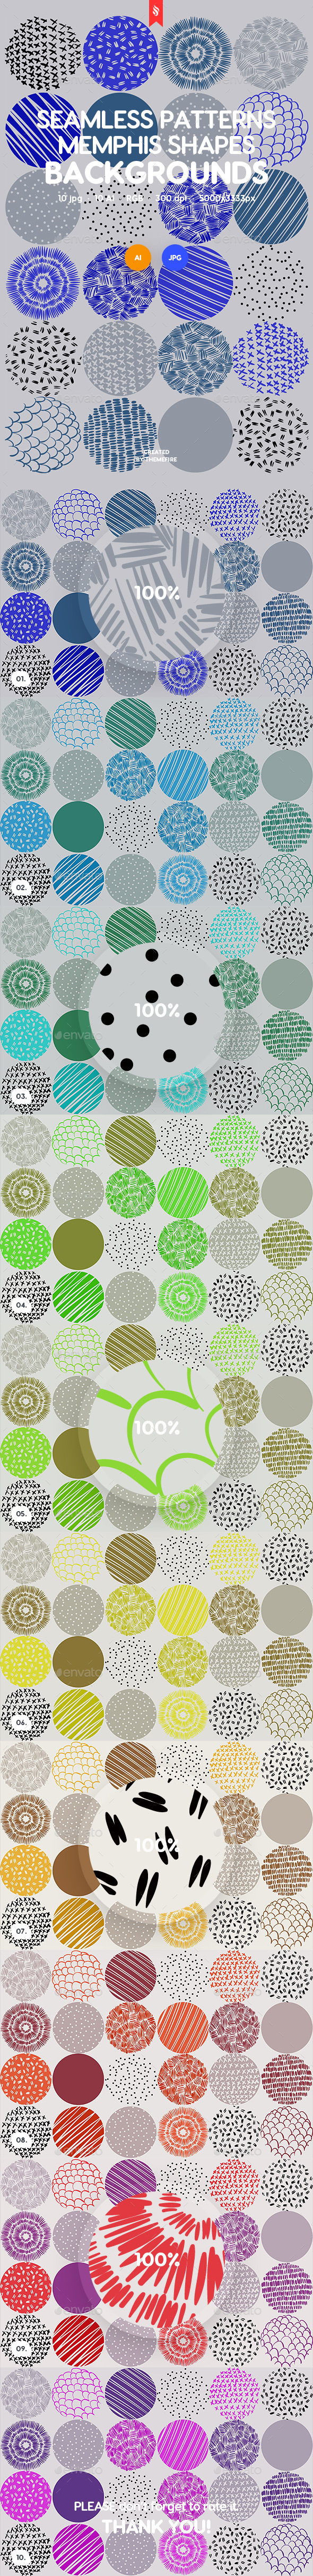 Abstract Seamless Patterns Circle Shapes in Memphis Style Backgrounds - Patterns Backgrounds